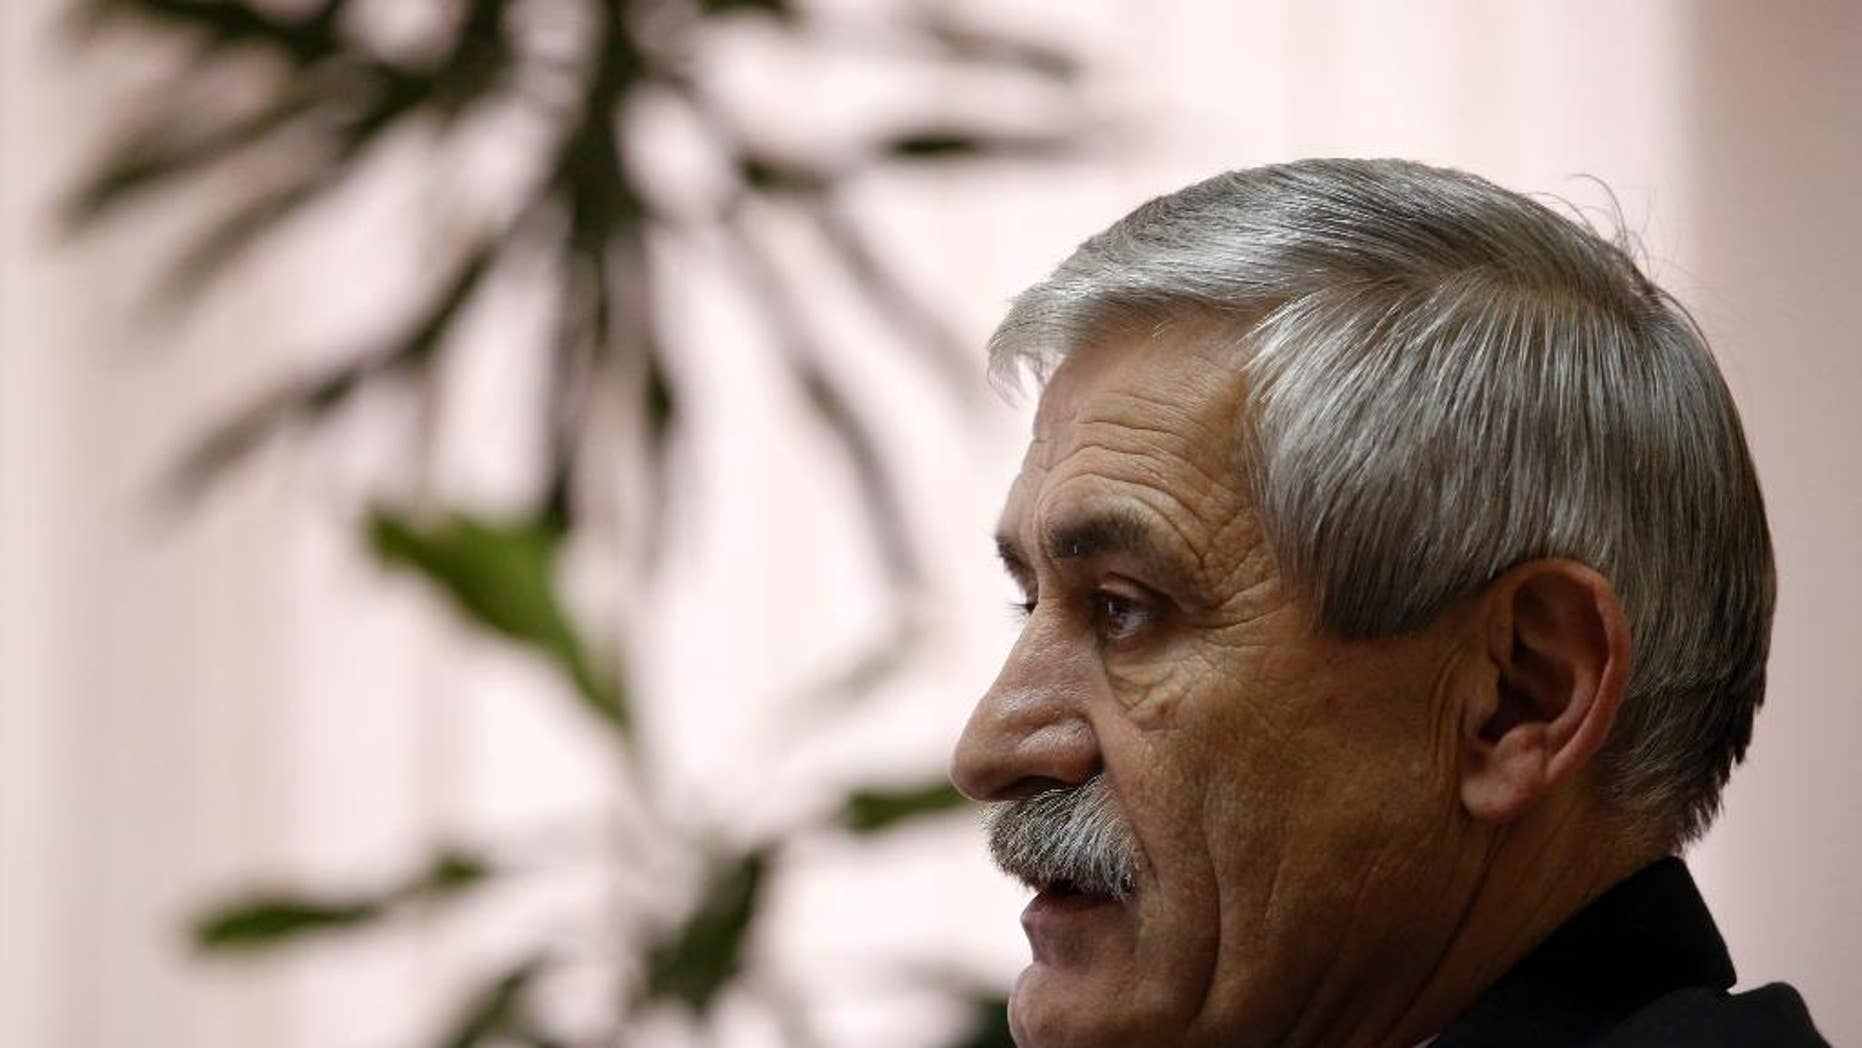 The head of a Serbian arms factory Milojko Brzakovic speaks during an interview with The Associated Press, in Belgrade, Serbia, Thursday, Dec. 10, 2015. Brzakovic of the Zastava arms factory told the Associated Press Thursday that the M92 semi-automatic pistol was traced after its serial number matched the one delivered to an American arms dealer in May 2013. (AP Photo/Darko Vojinovic)